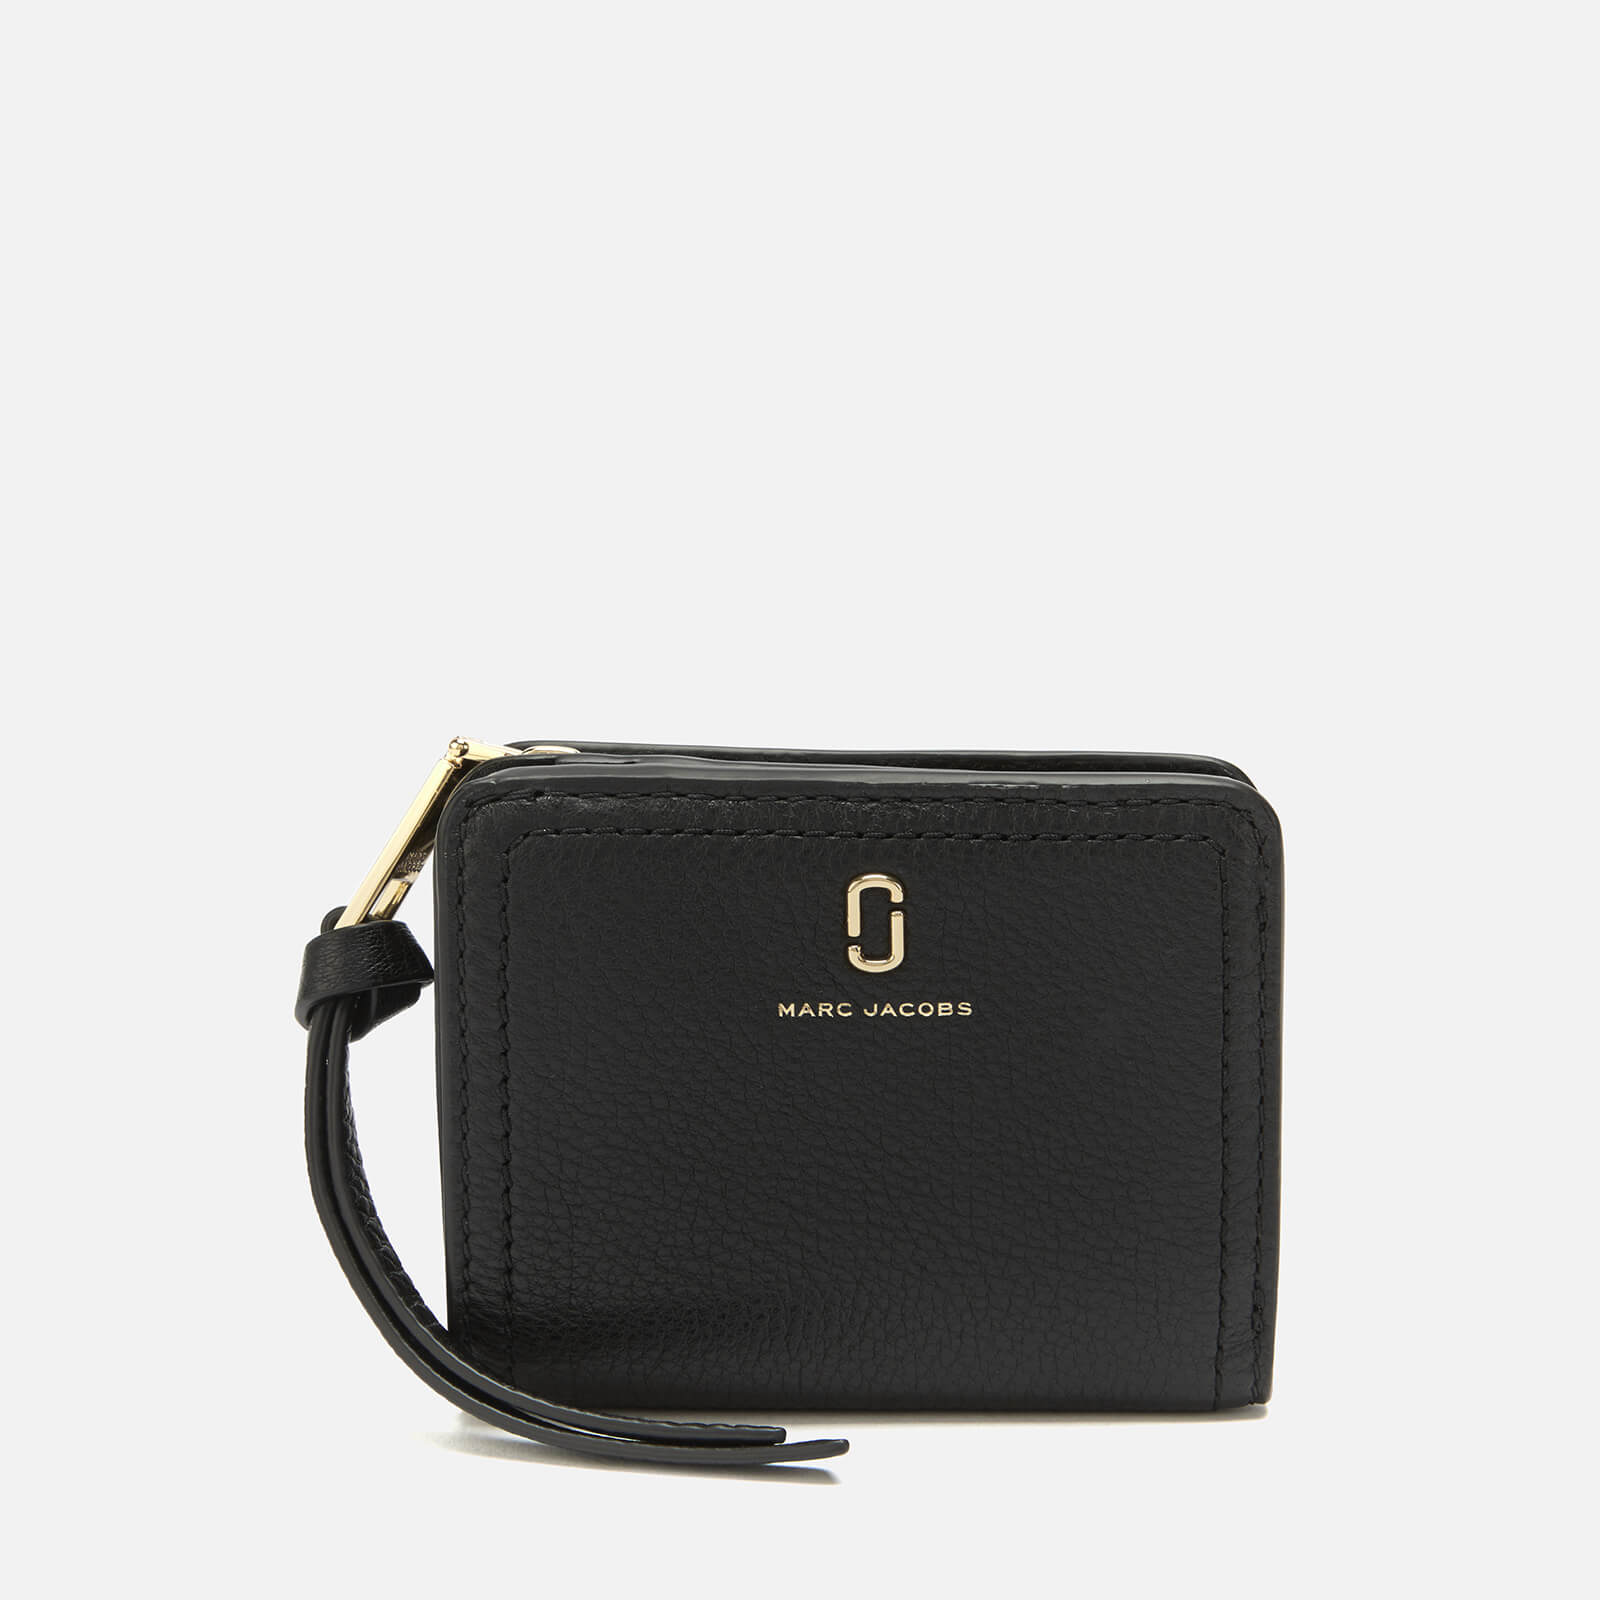 bd094fb2e0 Marc Jacobs Women's Mini Compact Wallet - Black - Free UK Delivery over £50